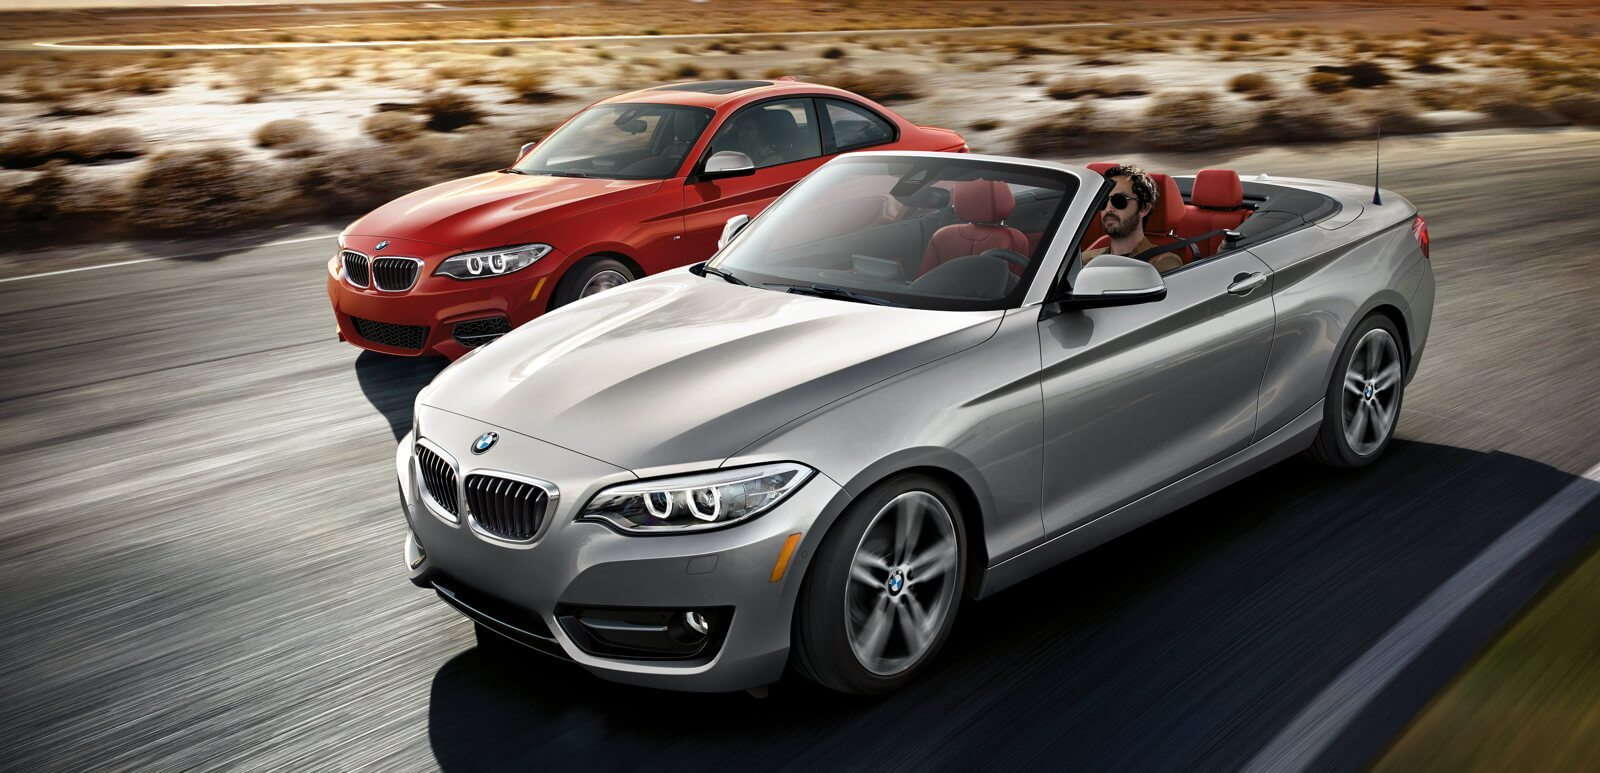 2018 Bmw 2 Series Convertible M240i Car 2018 Bmw 2 Series Convertible Car Price Engine Full